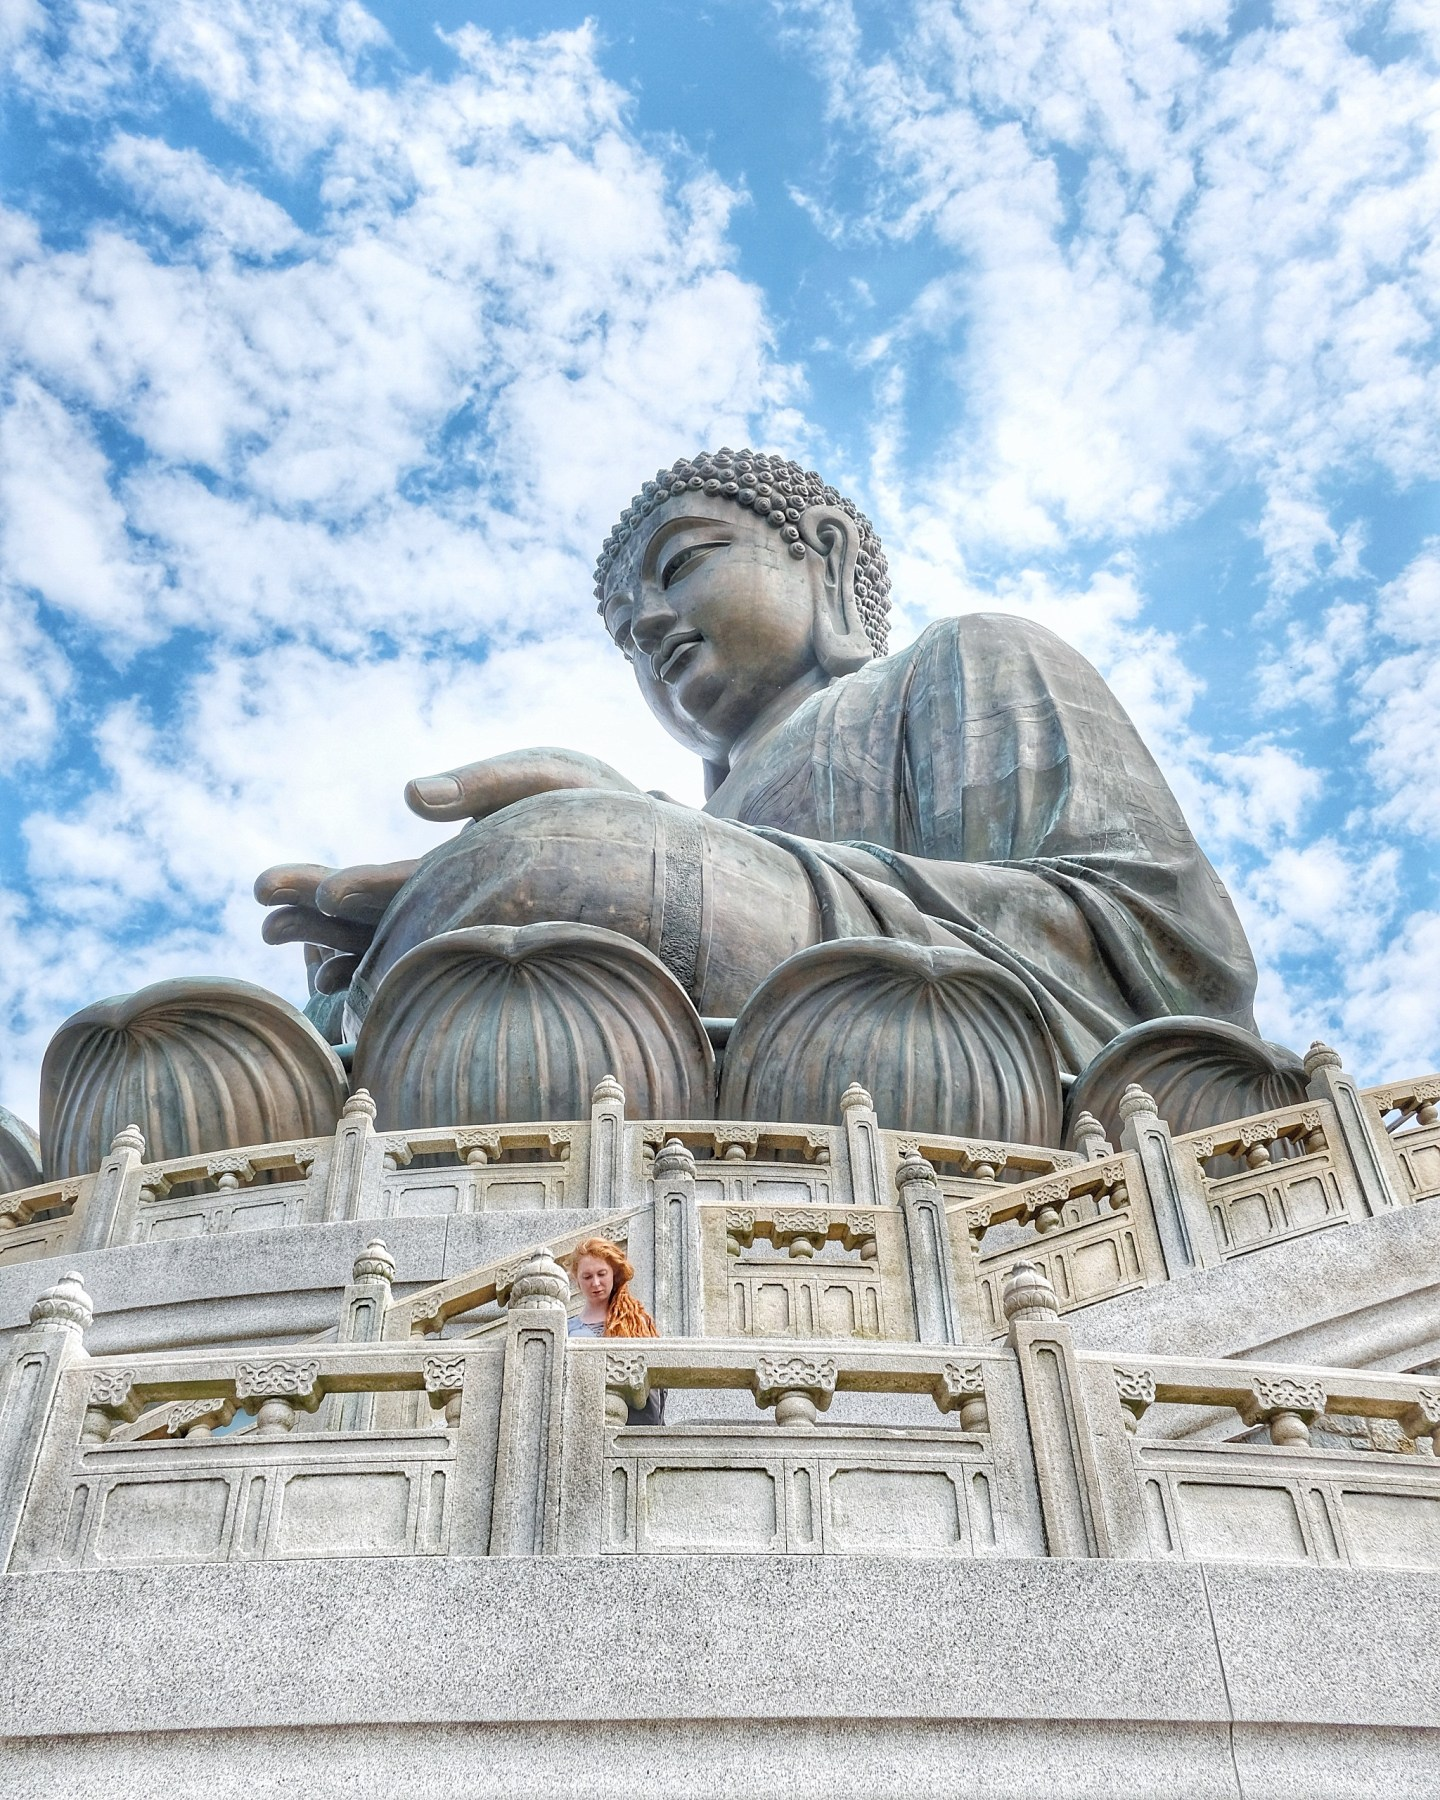 A Not So Solo Trip to Big Buddha, Hong Kong